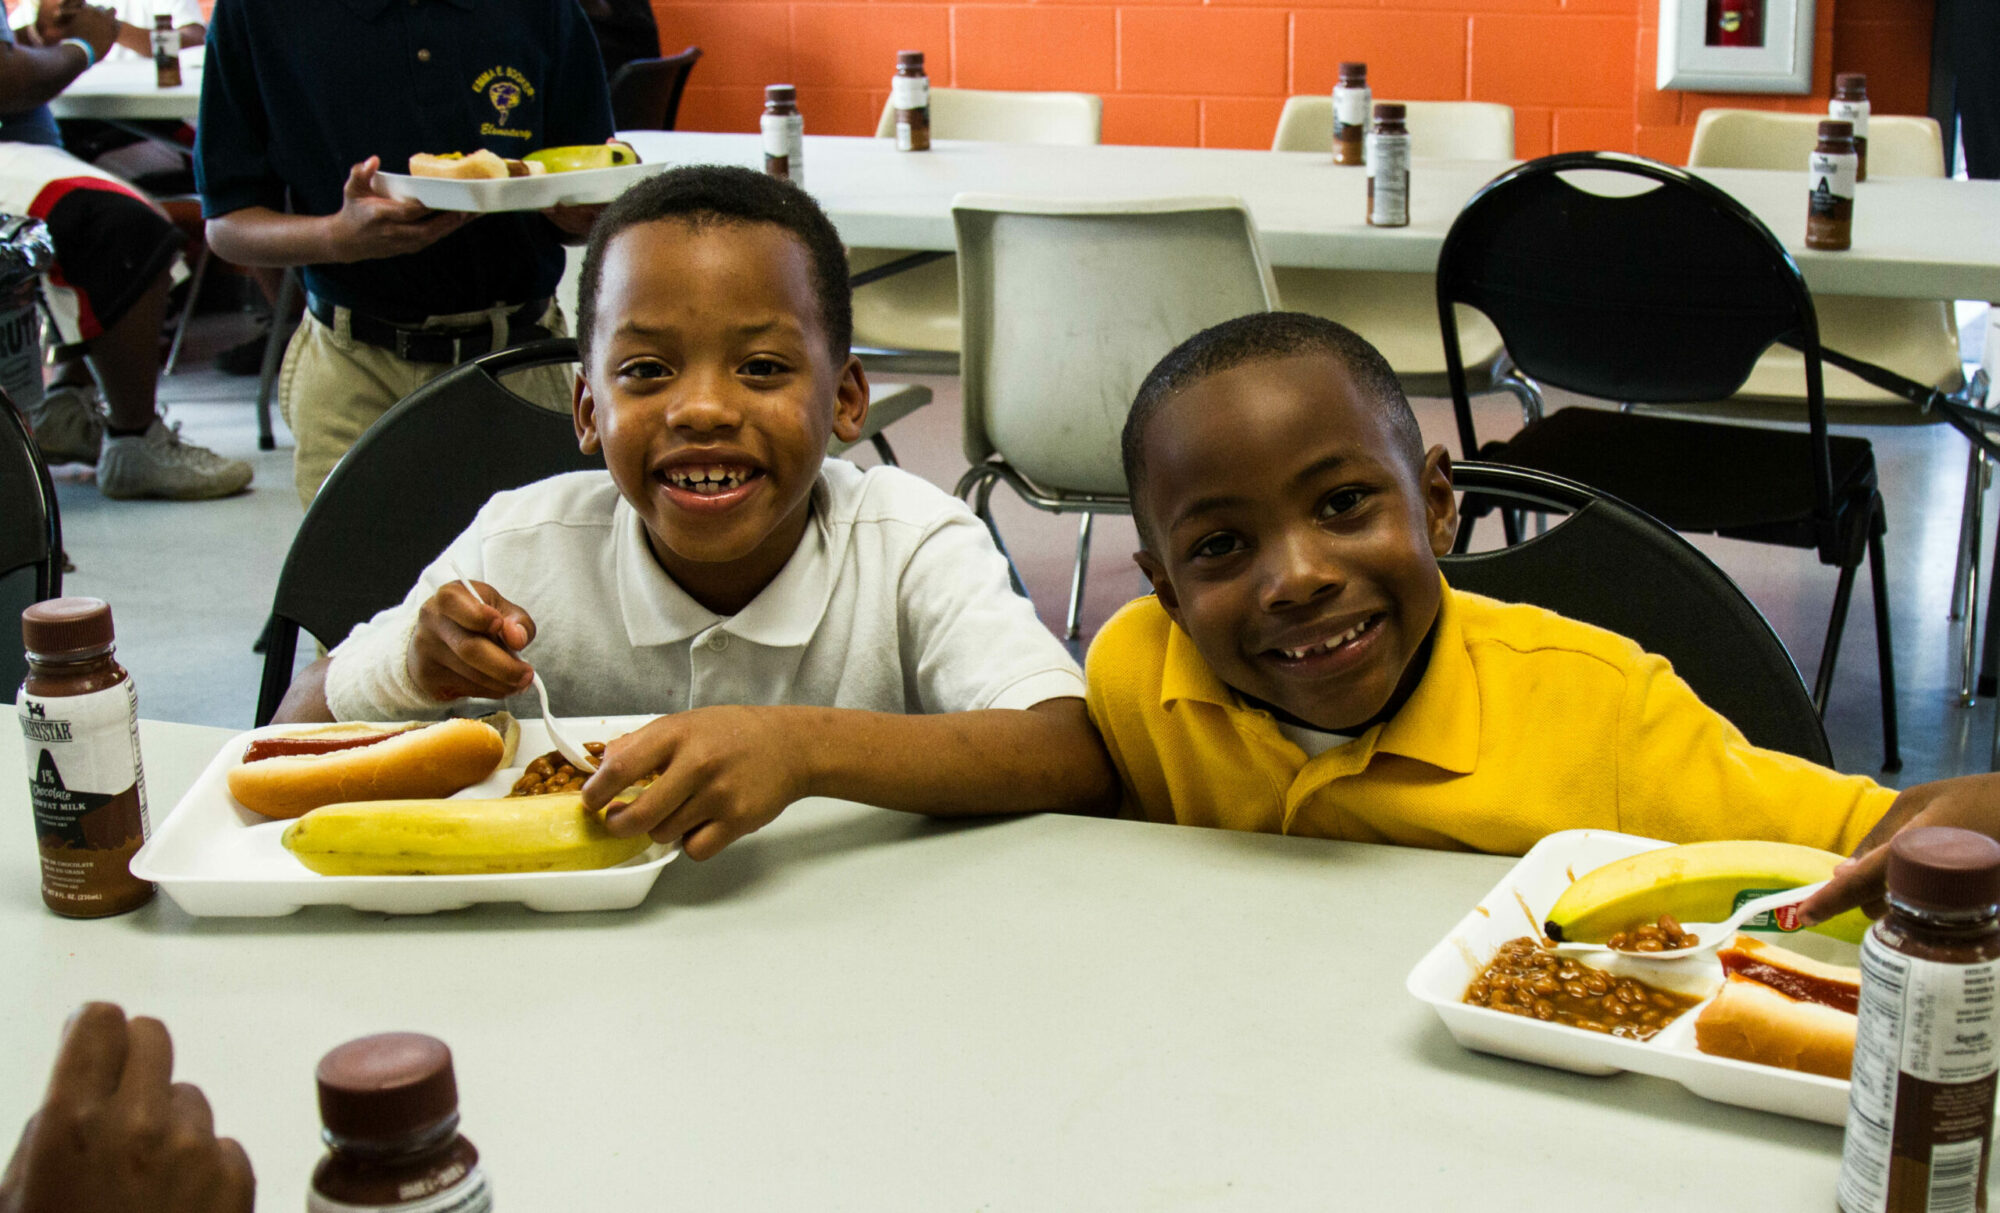 A Systemic Change in Addressing Childhood Hunger